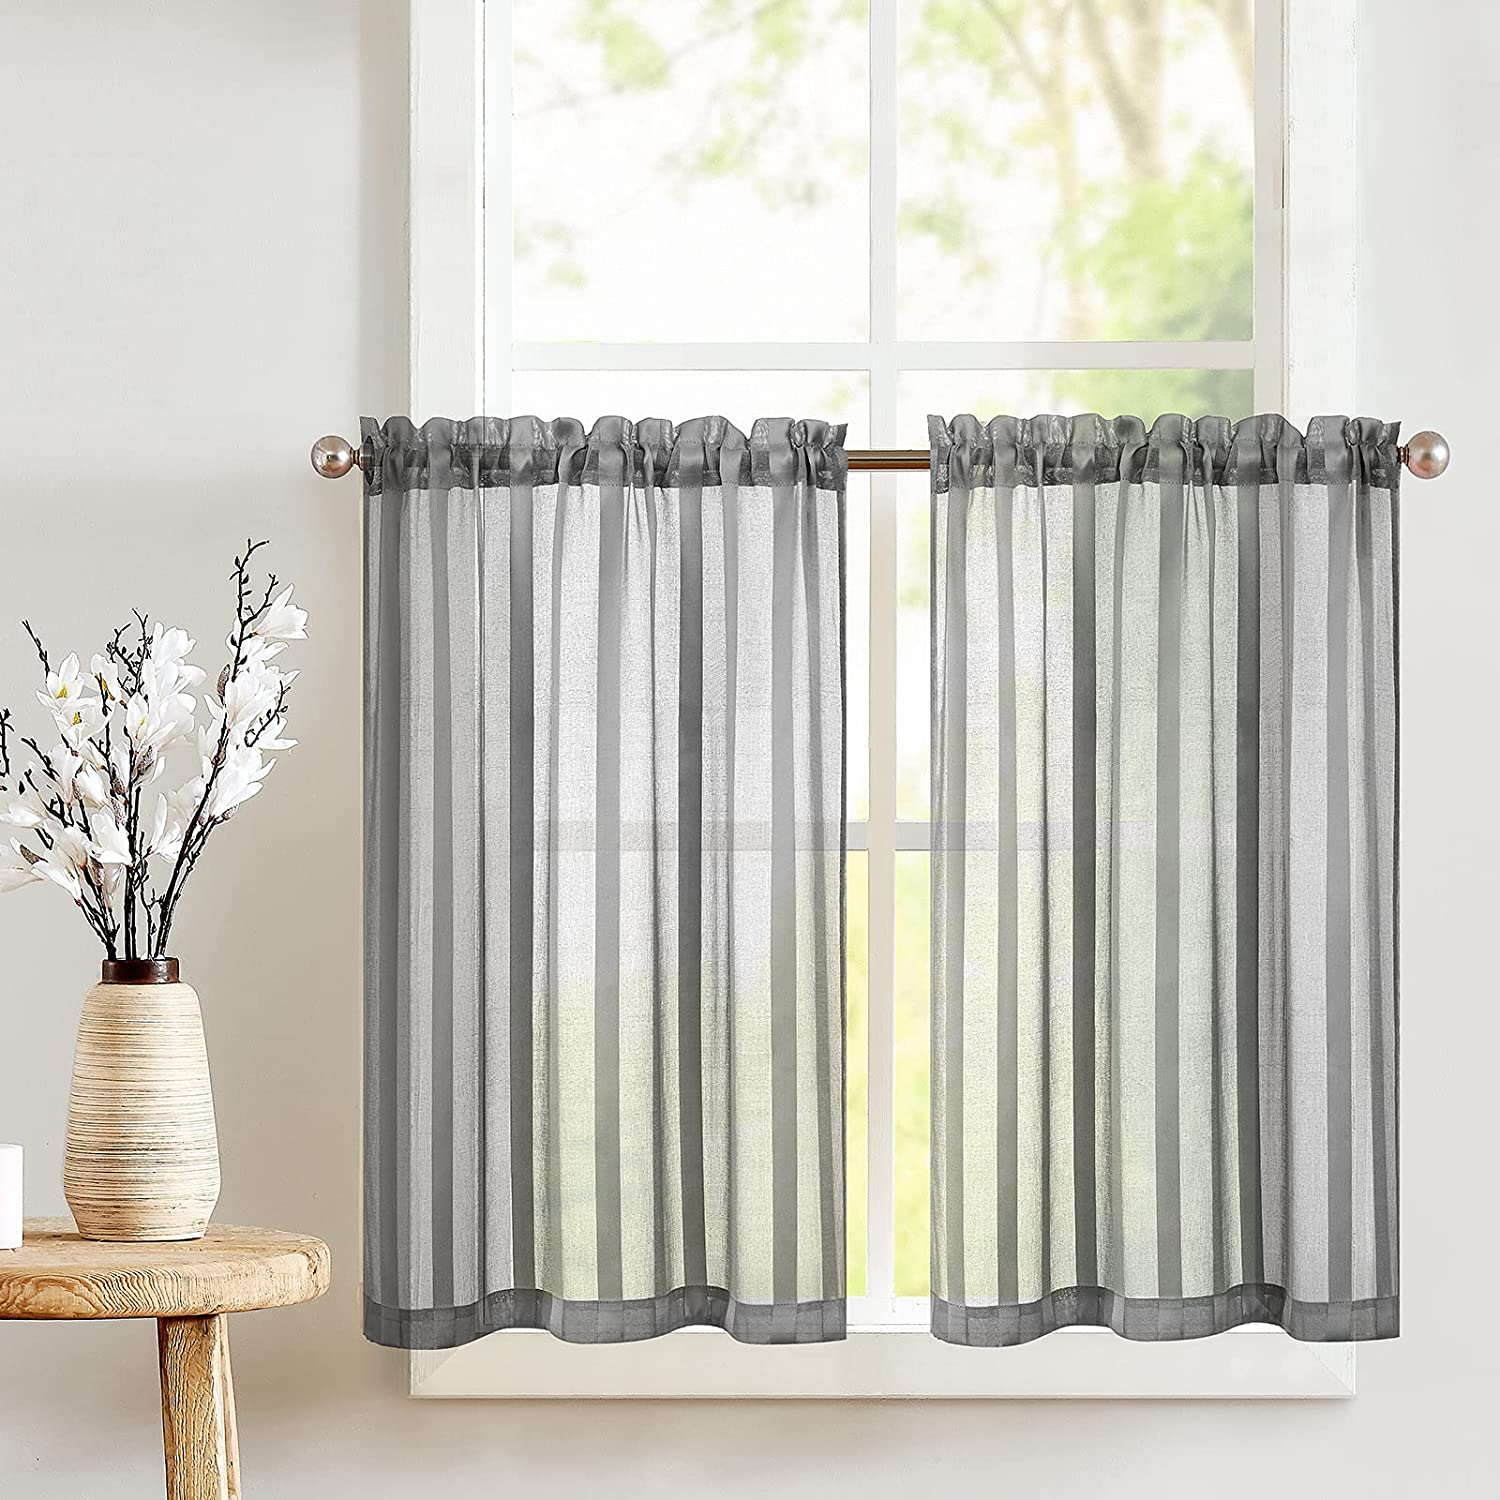 JINCHAN Super Discount mail order Special SALE held Kitchen Curtains 36 Bat Long Inches for